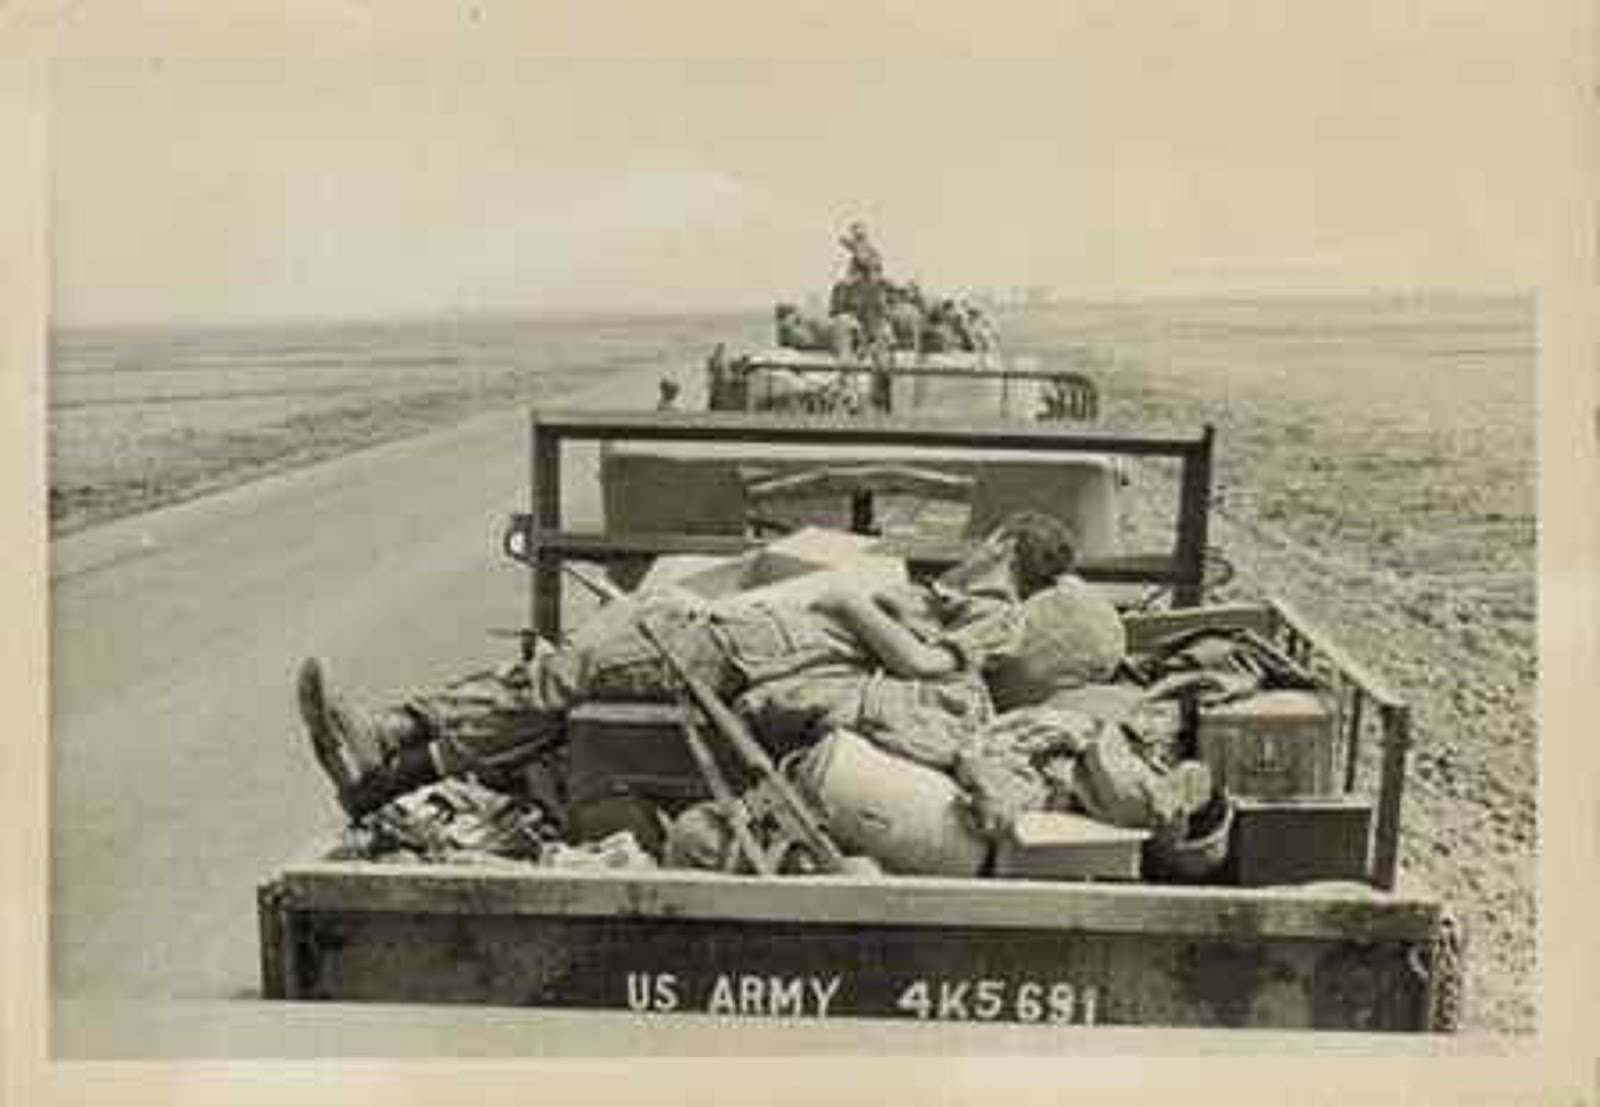 TRUCK LOAD OF DEAD BODIES FROM THE 199th LIGHT INFANTRY BRIGADE LEAVING THE BATTLEFIELD IN THE